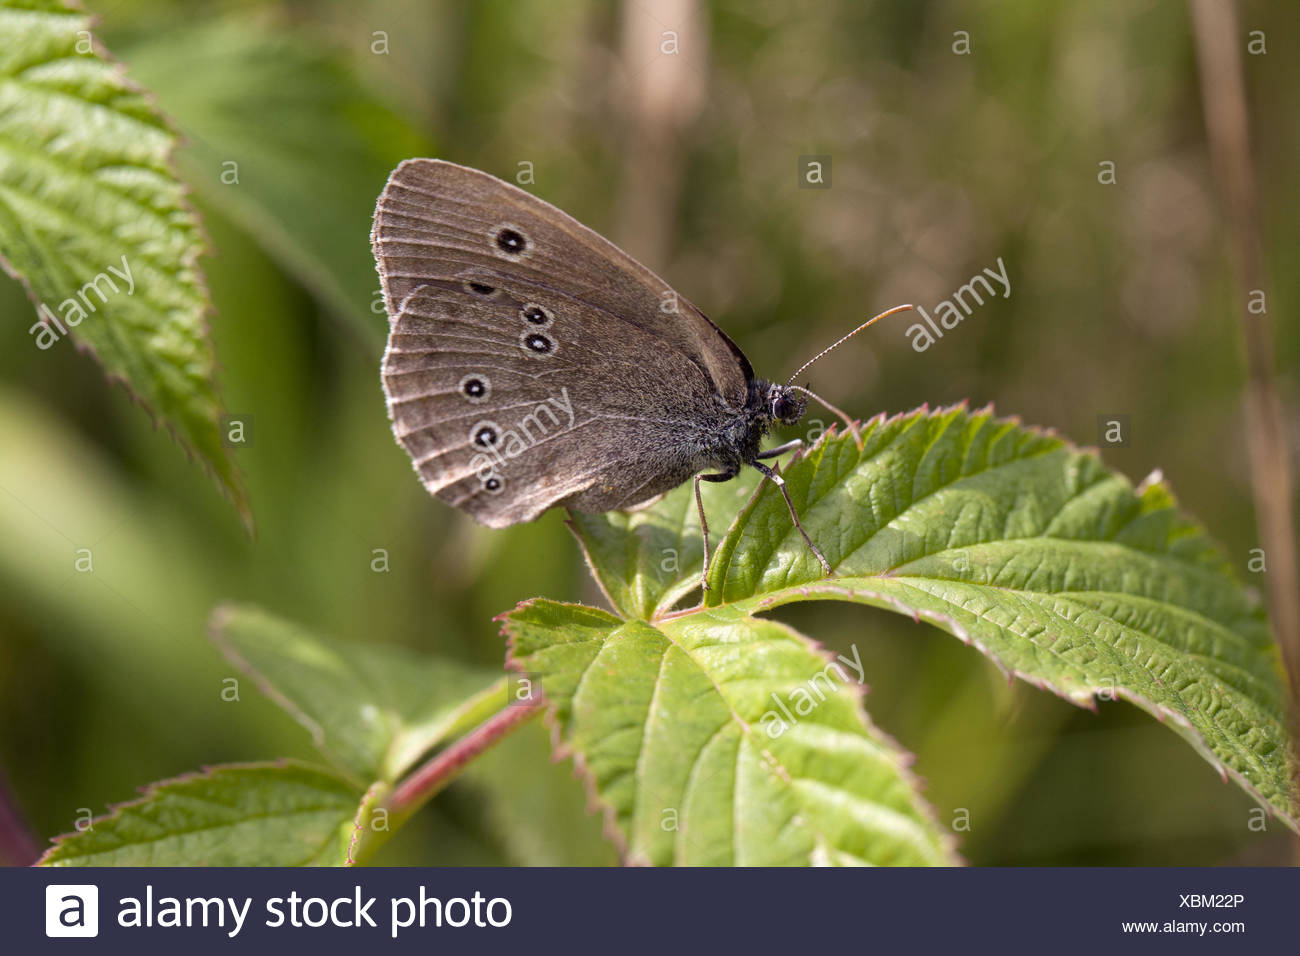 Butterfly on a leaf - Stock Image